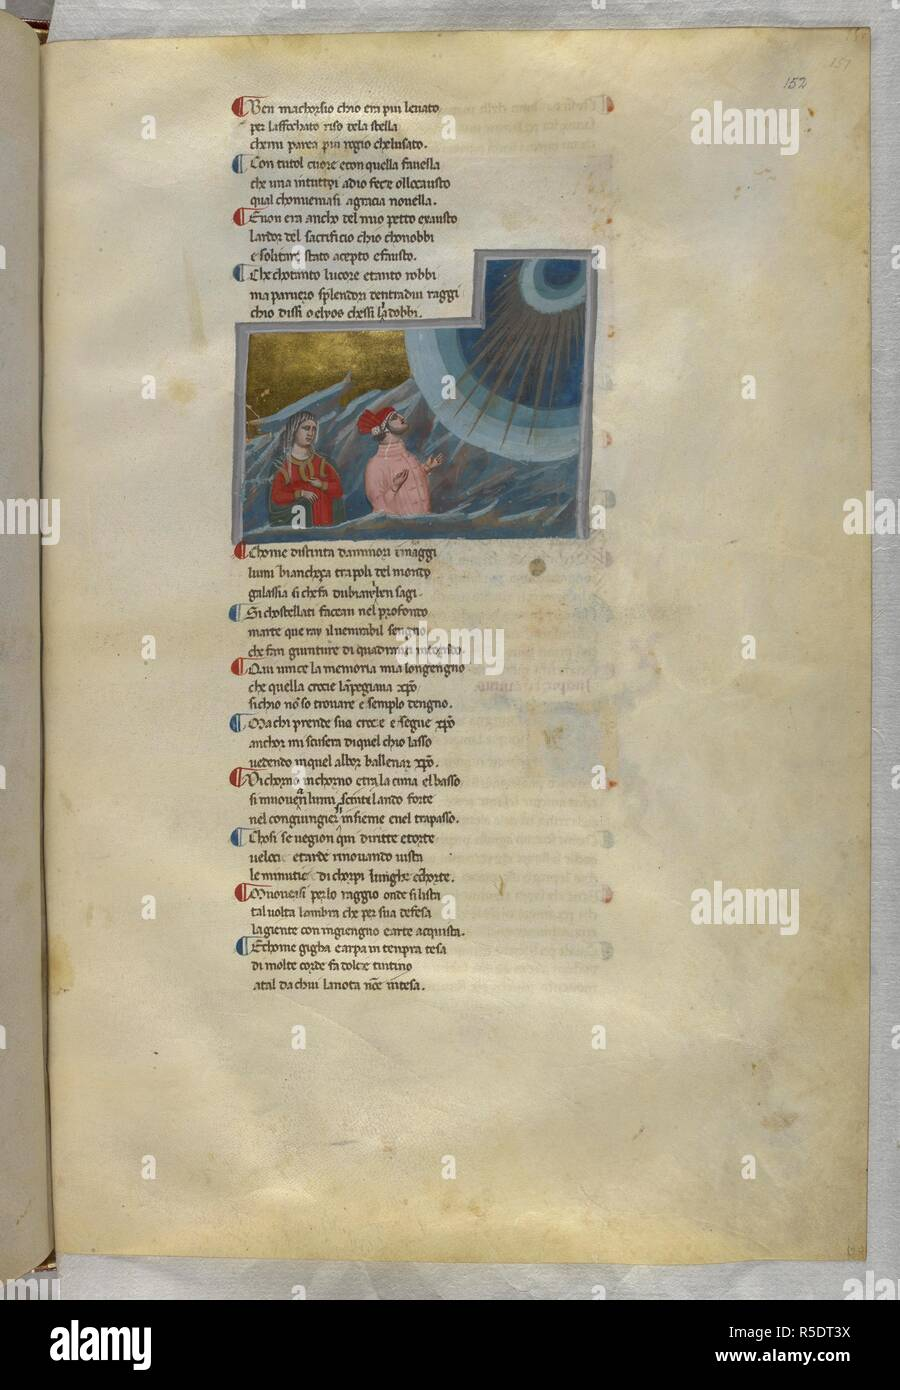 Paradiso : Dante turns towards the heavenly light. Dante Alighieri, Divina Commedia ( The Divine Comedy ), with a commentary in Latin. 1st half of the 14th century. Source: Egerton 943, f.152. Language: Italian, Latin. - Stock Image